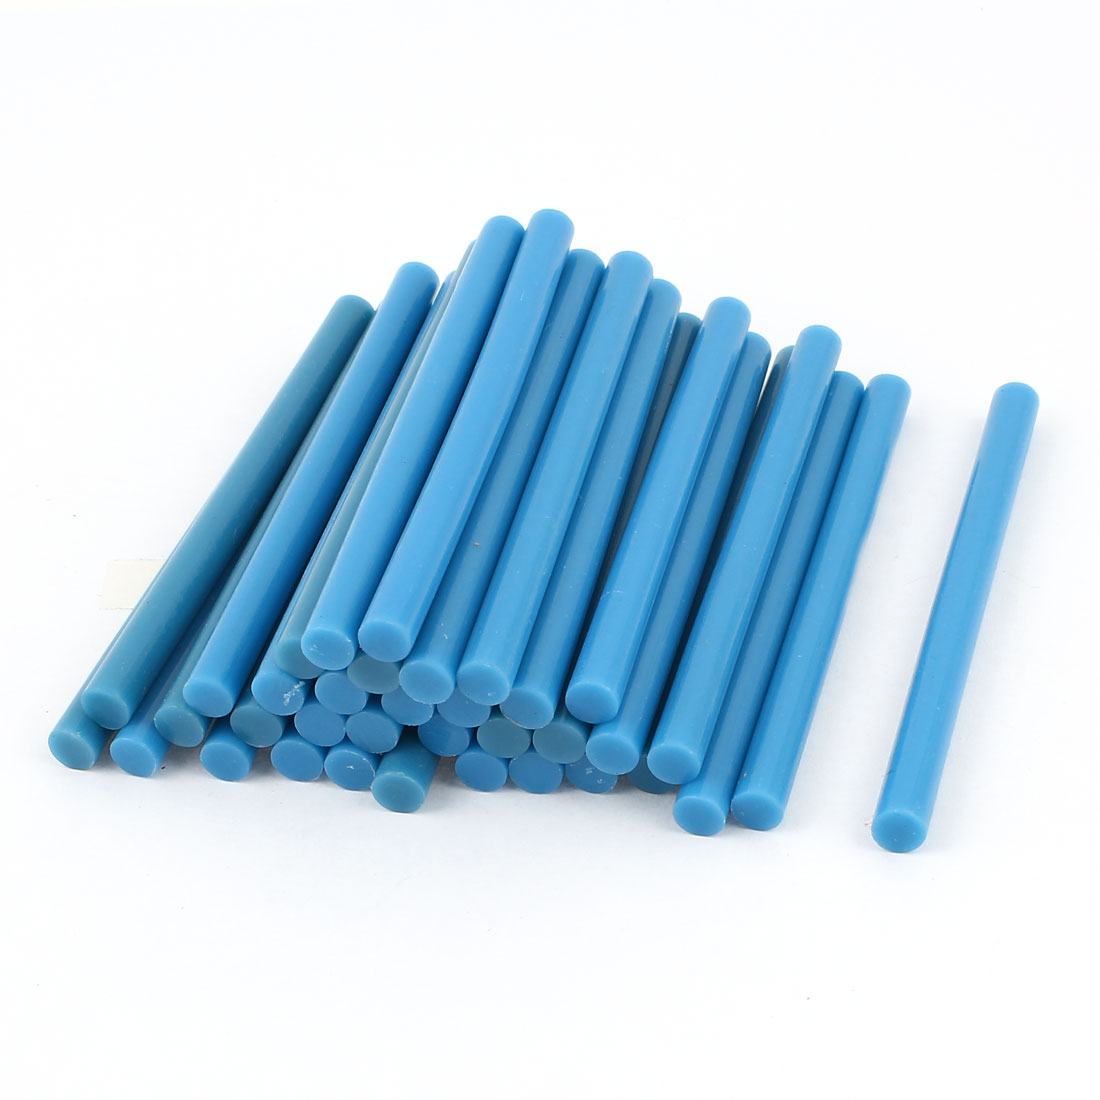 35 Pcs Blue Hot Melt Glue Gun Adhesive Sticks 7mm x 100mm